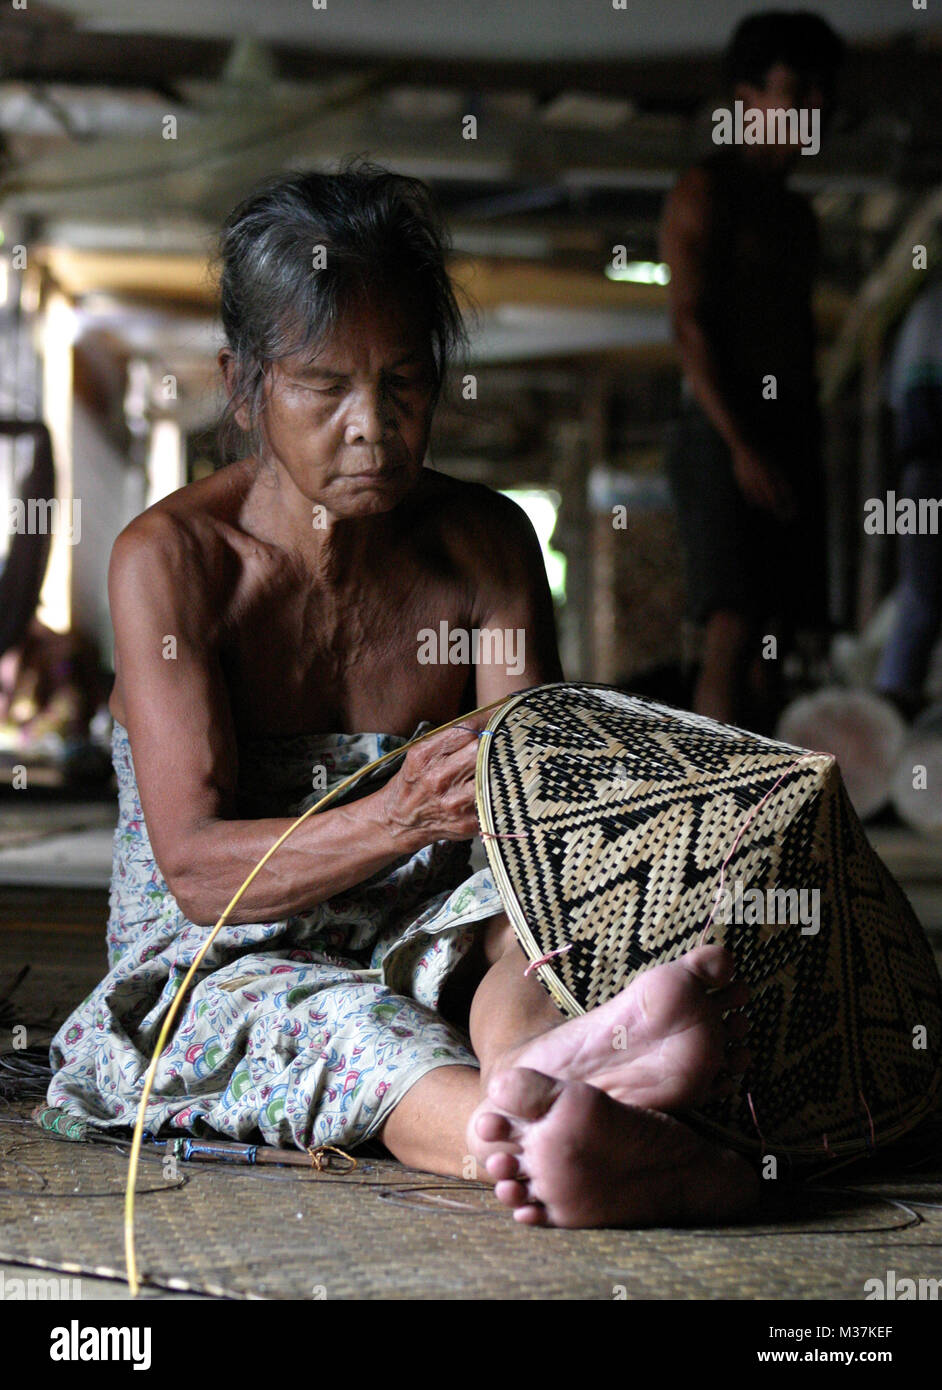 A local resident weaves a hat in a longhouse set in rainforest in the Batang Ai National Park, in Sarawak, Malaysia - Stock Image